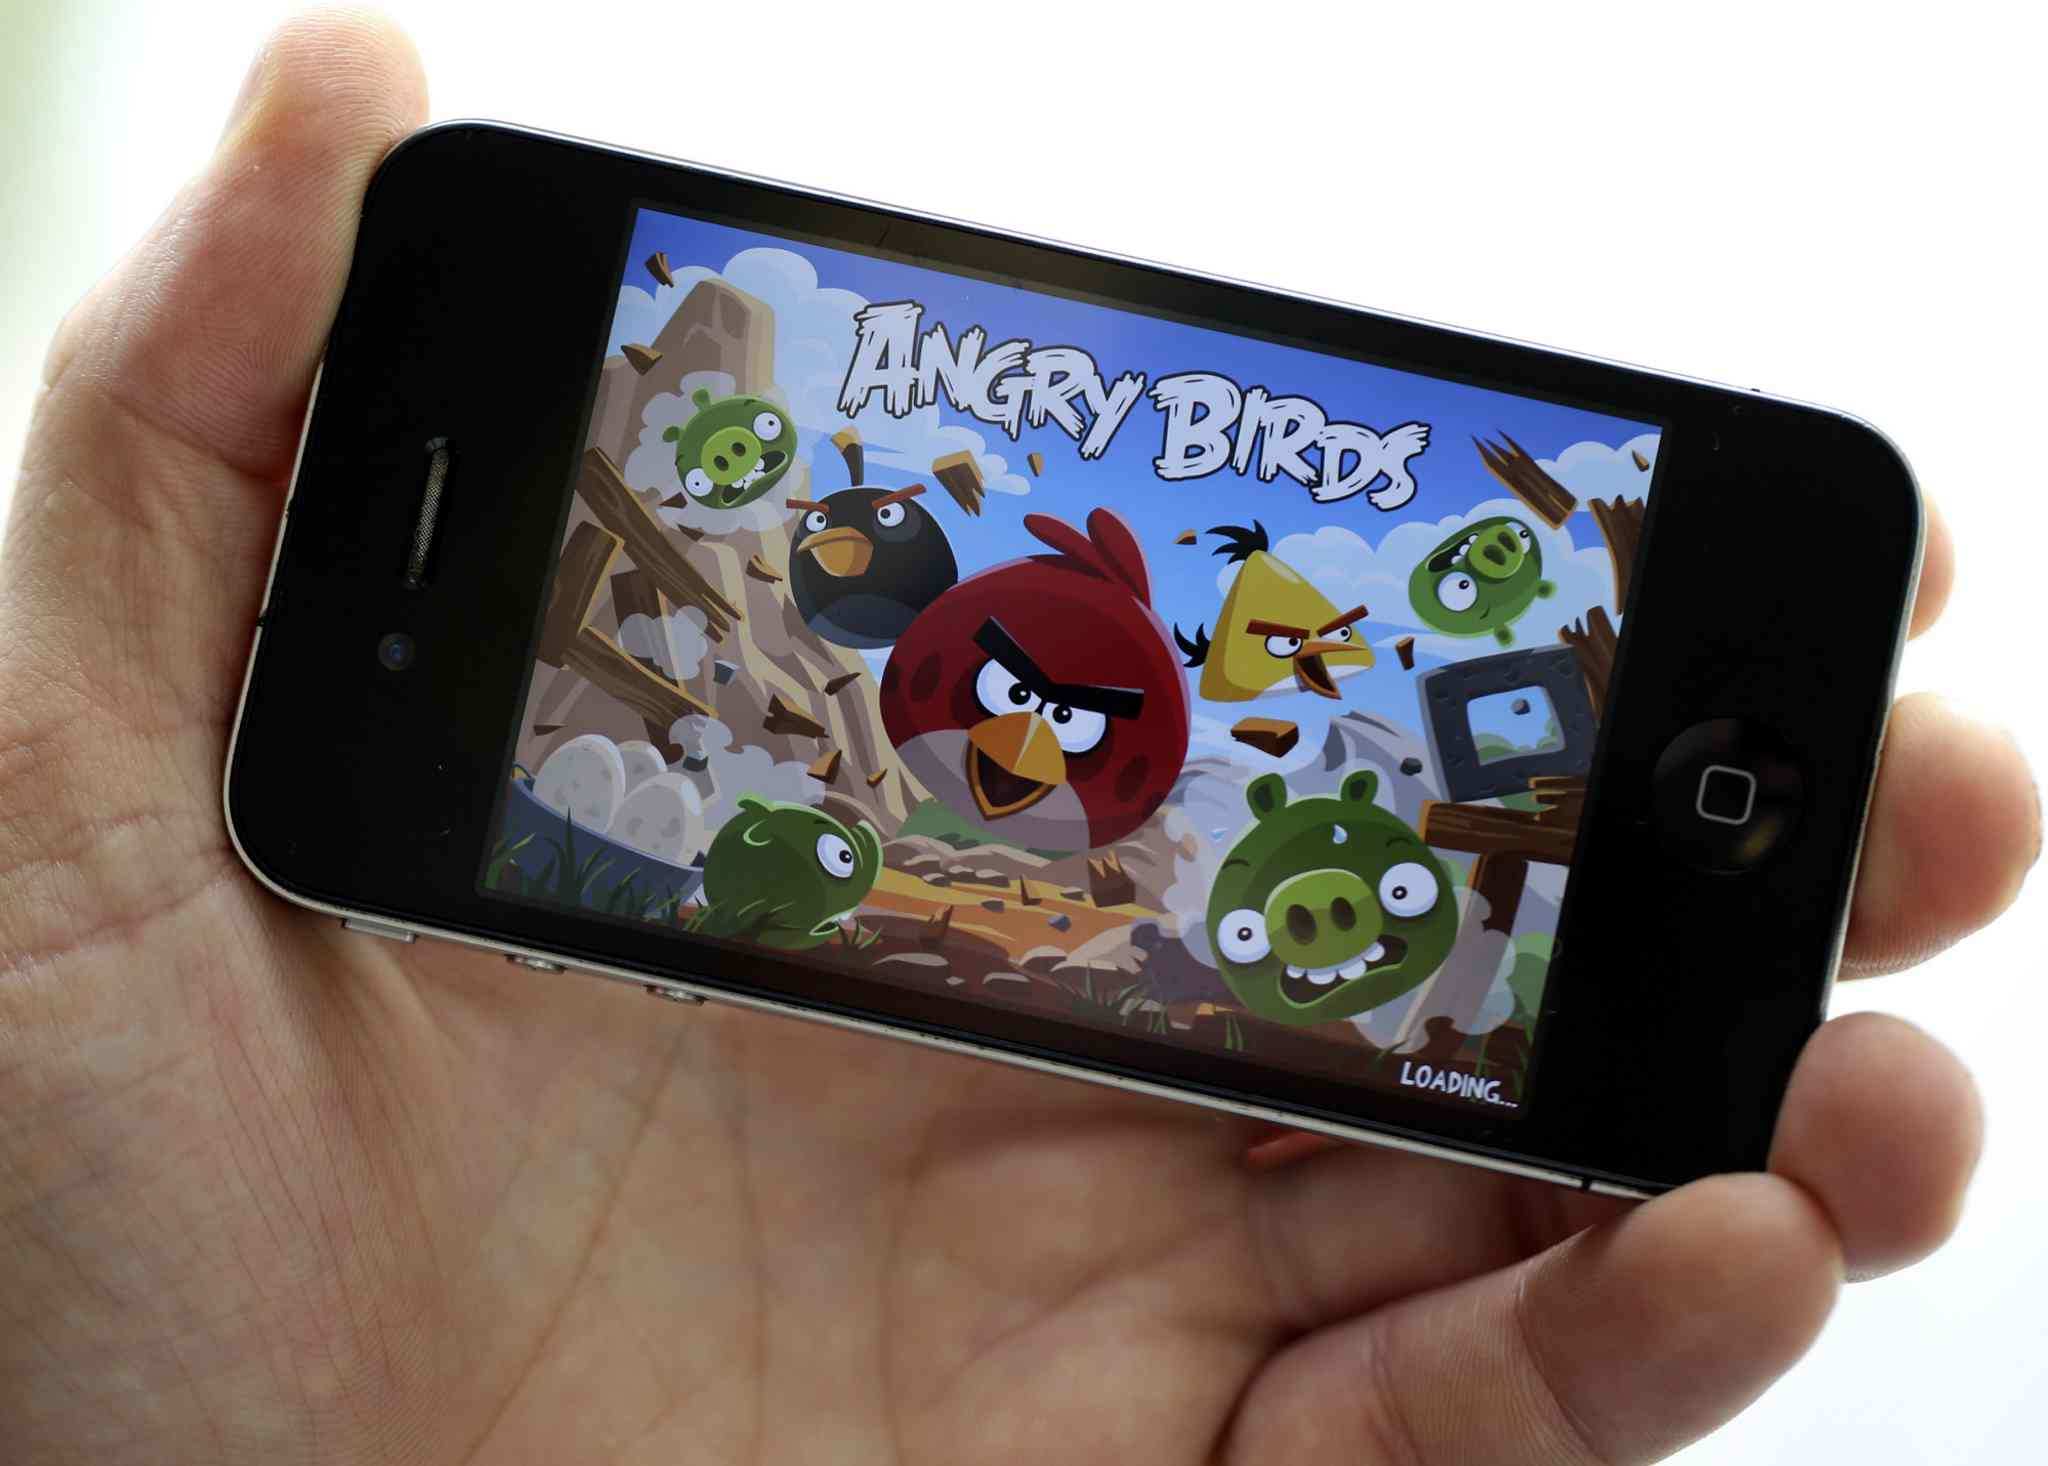 Angry Birds game apps have seen more than 1.7 billion downloads, and leaked documents say such apps can track movements and other personal information.